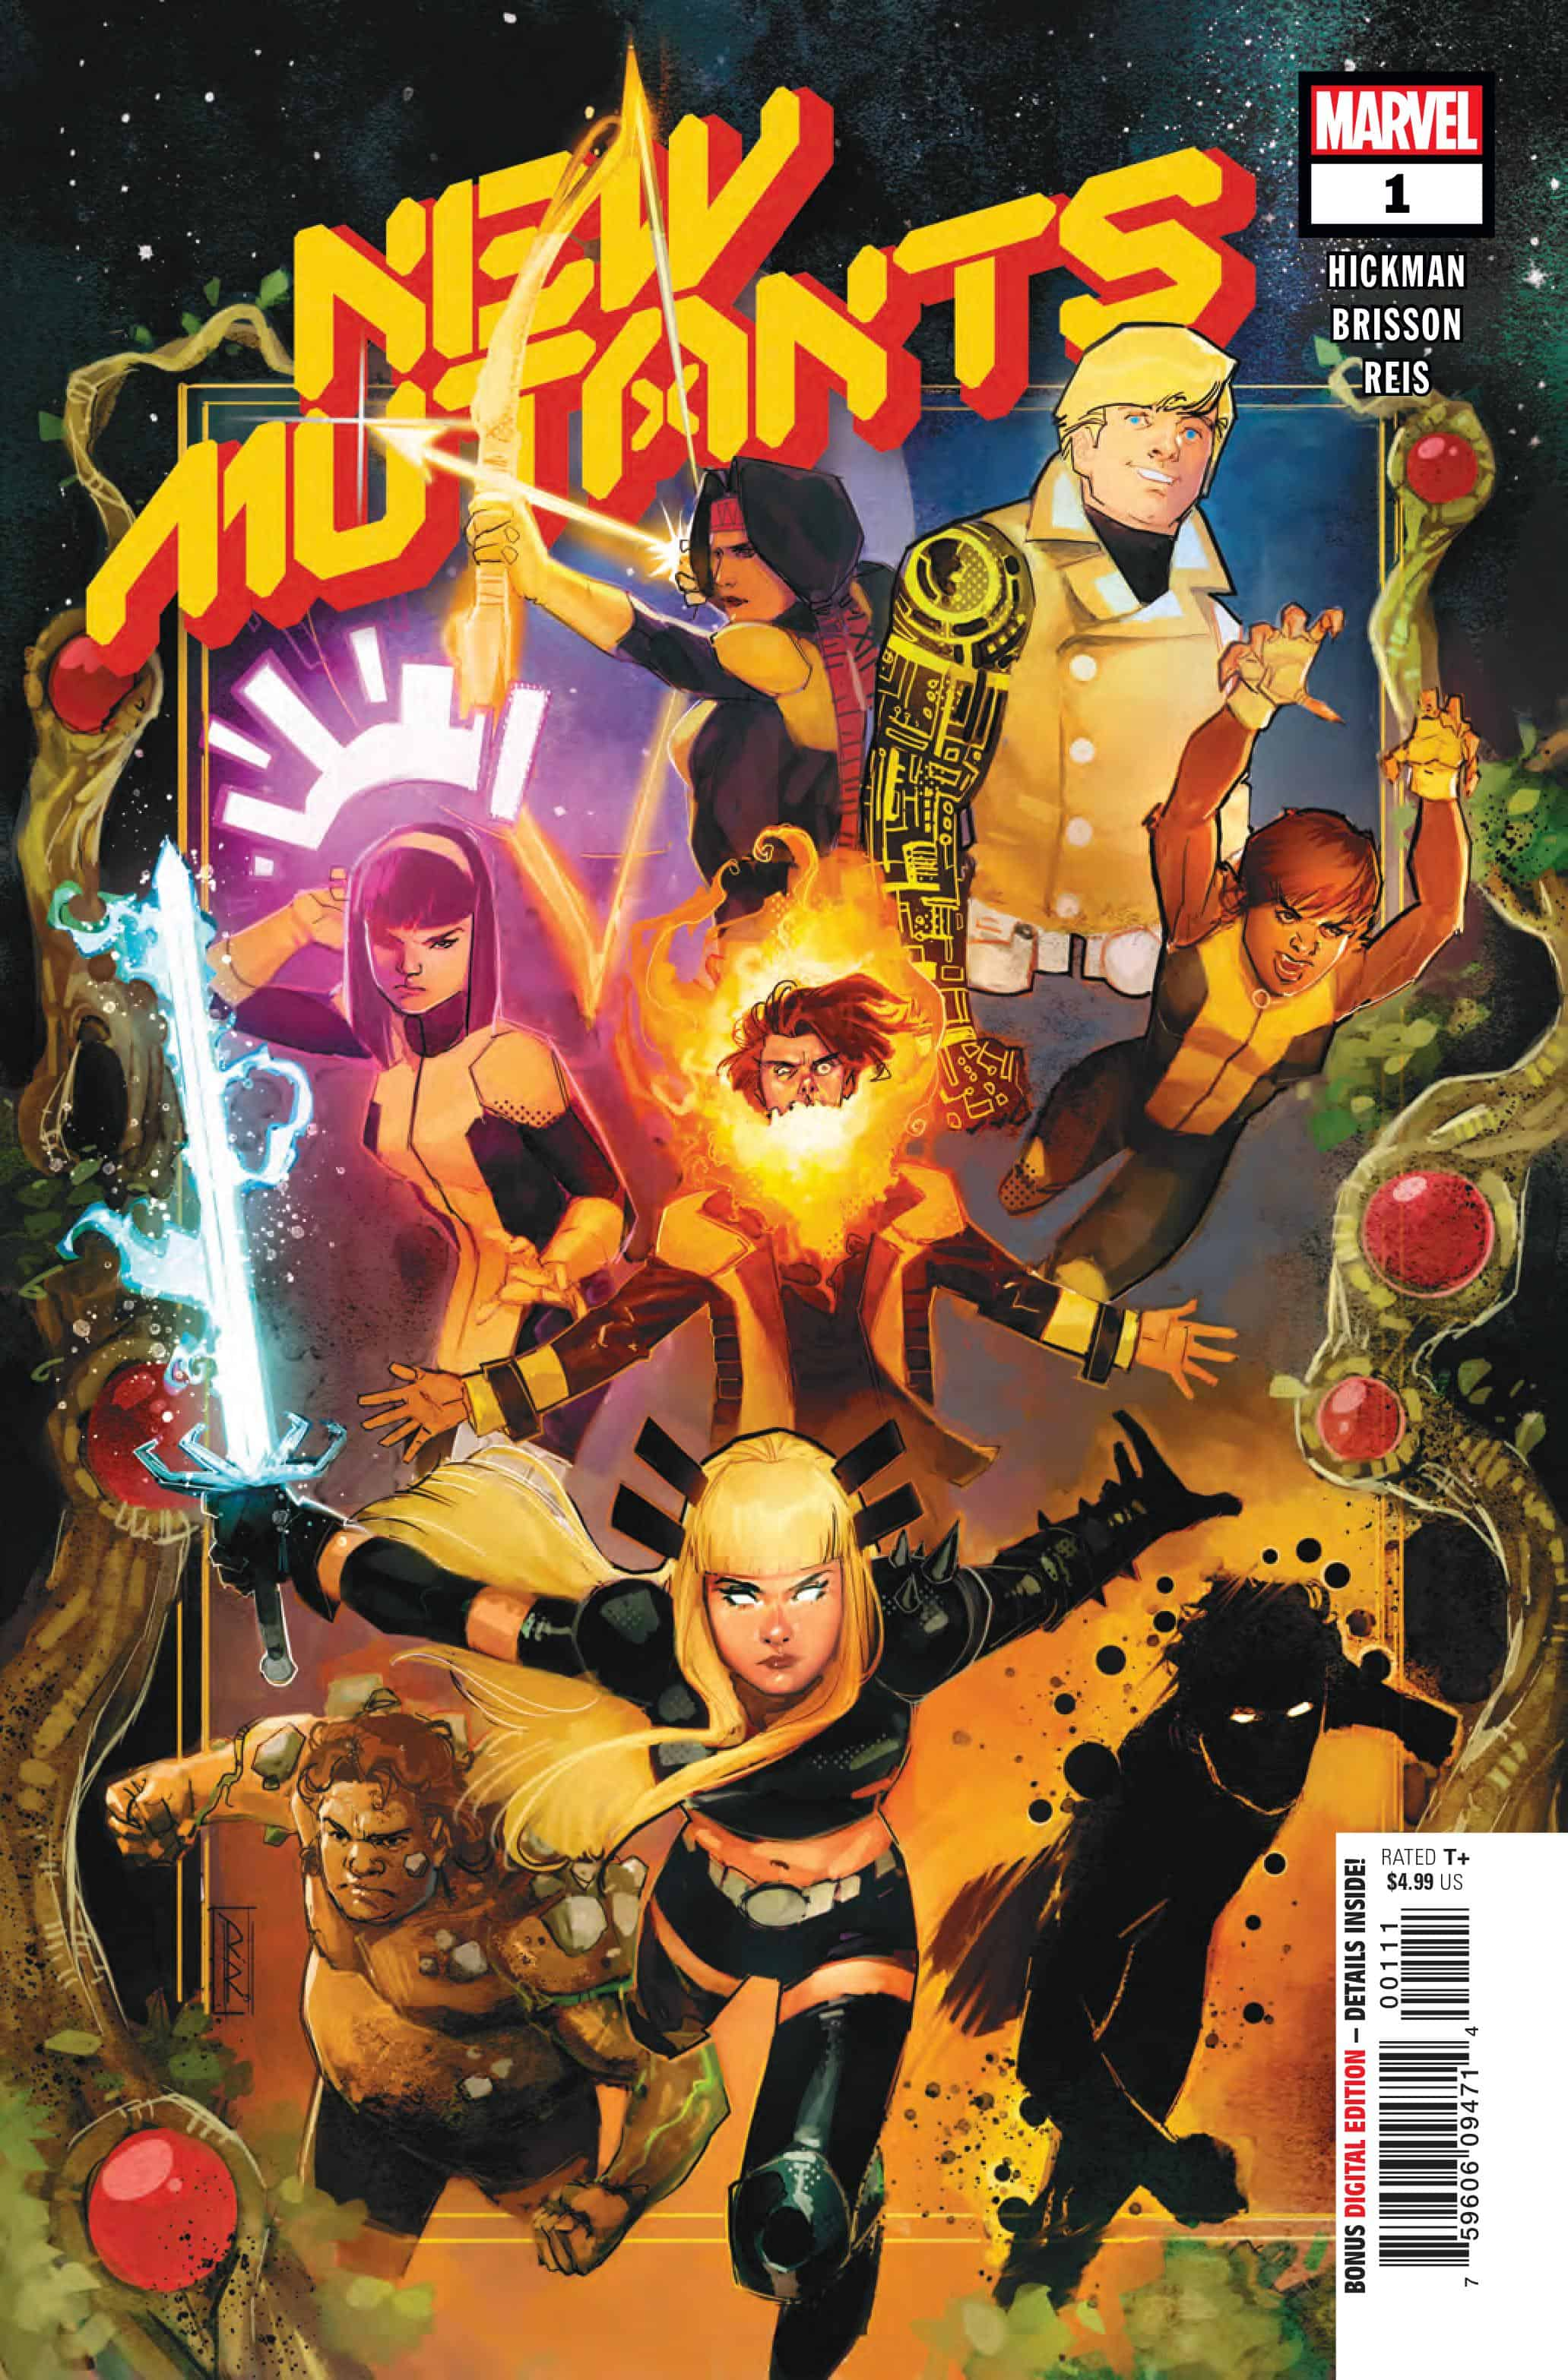 Marvel Preview: New Mutants #1